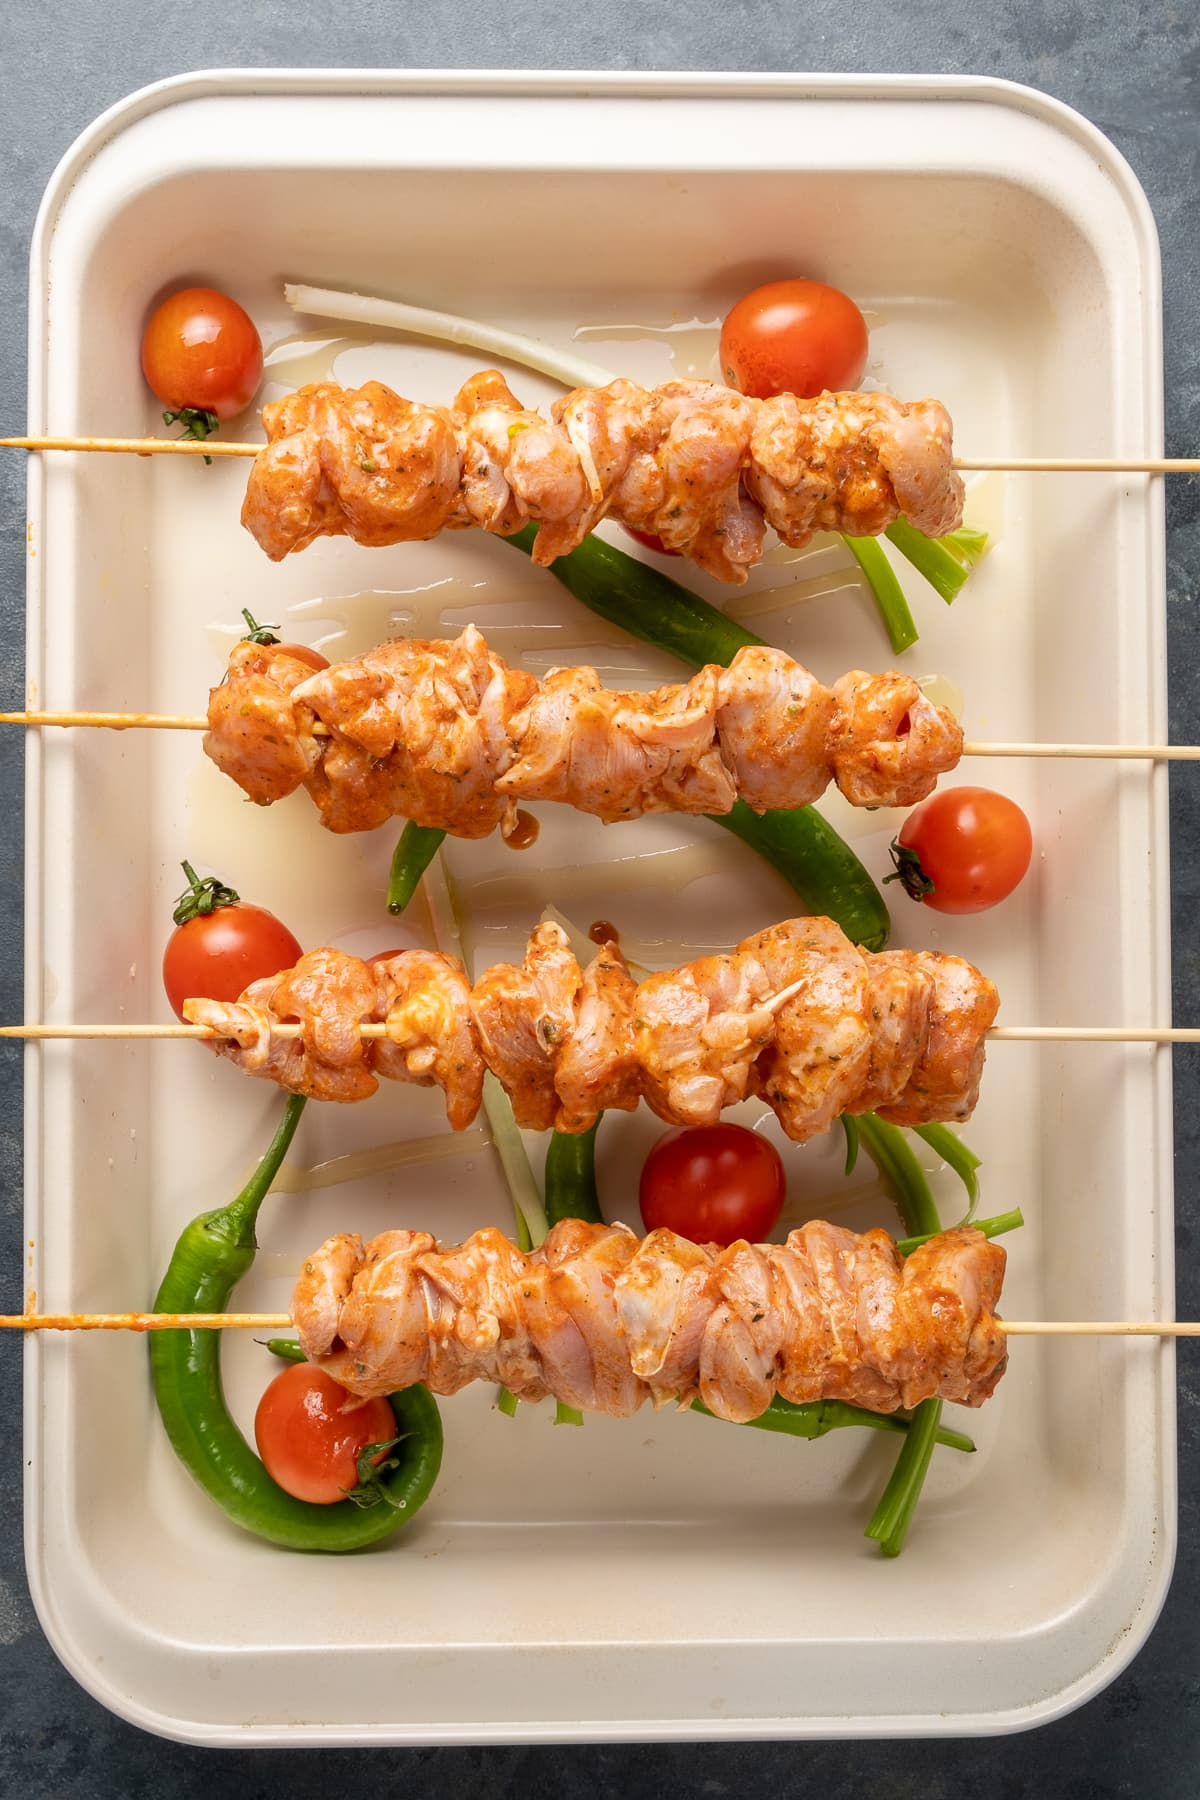 Raw chicken skewers placed on the edges of a baking pan and tomatoes, green peppers and green onions in the pan.